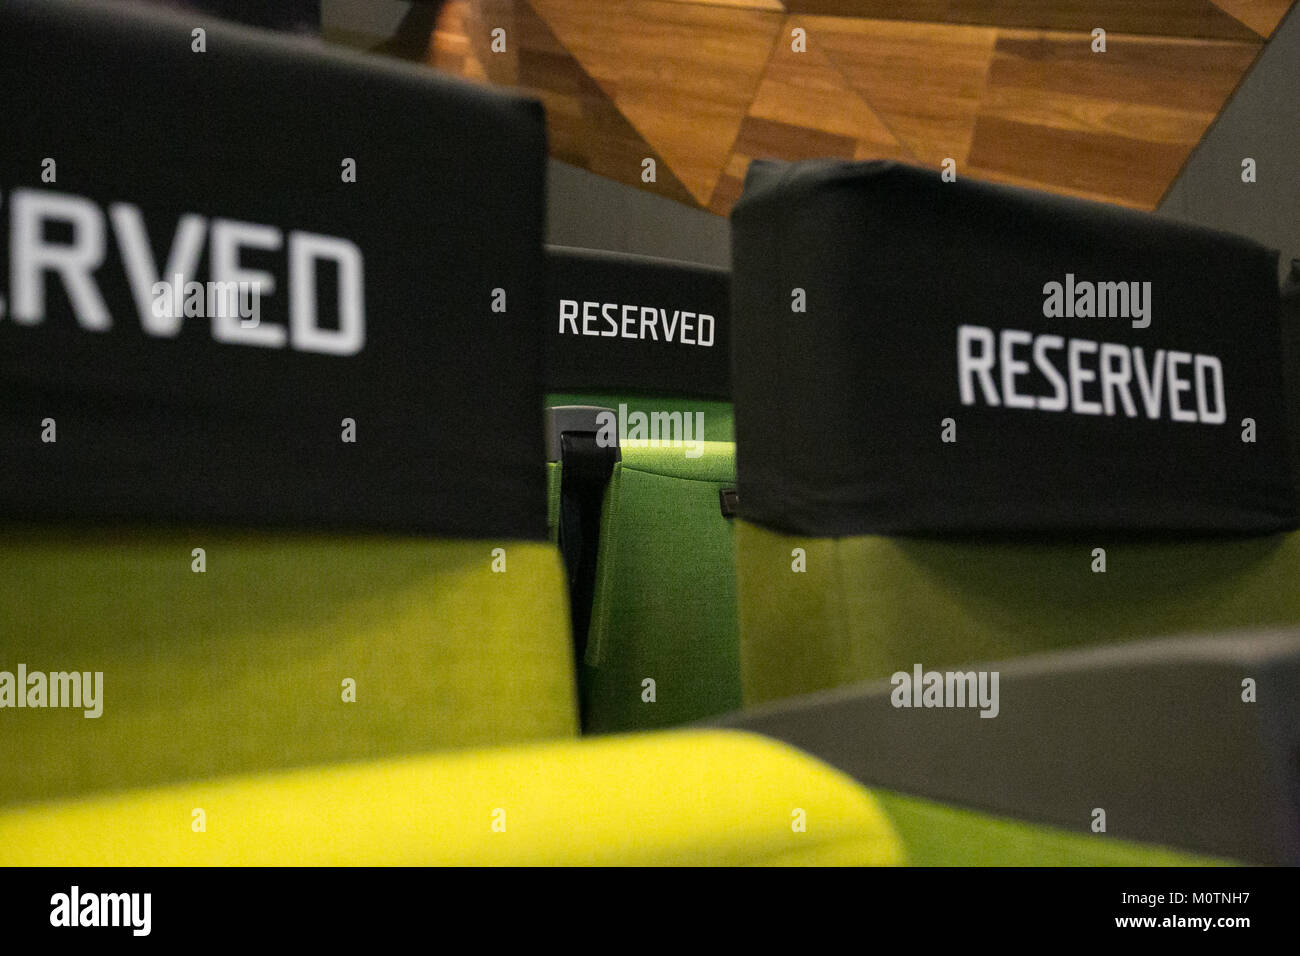 Reserved seats at the Melbourne Convention & Exhibition Centre - Stock Image